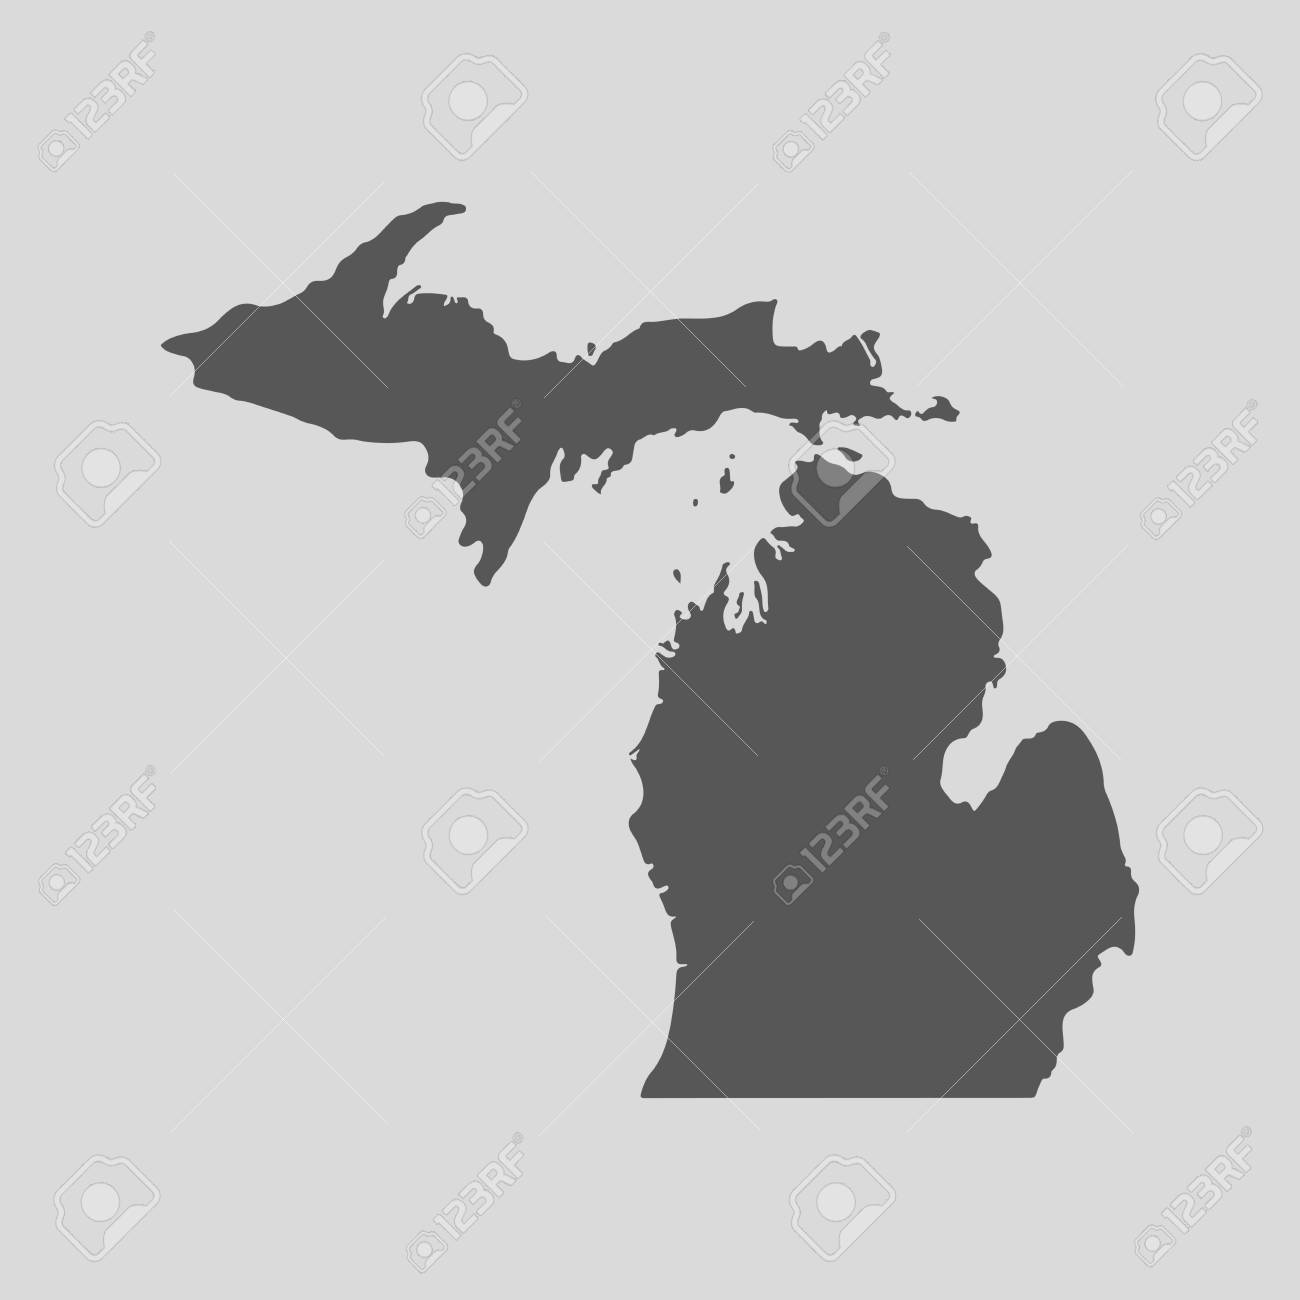 Black Map Of The State Of Michigan - Vector Illustration. Simple ...